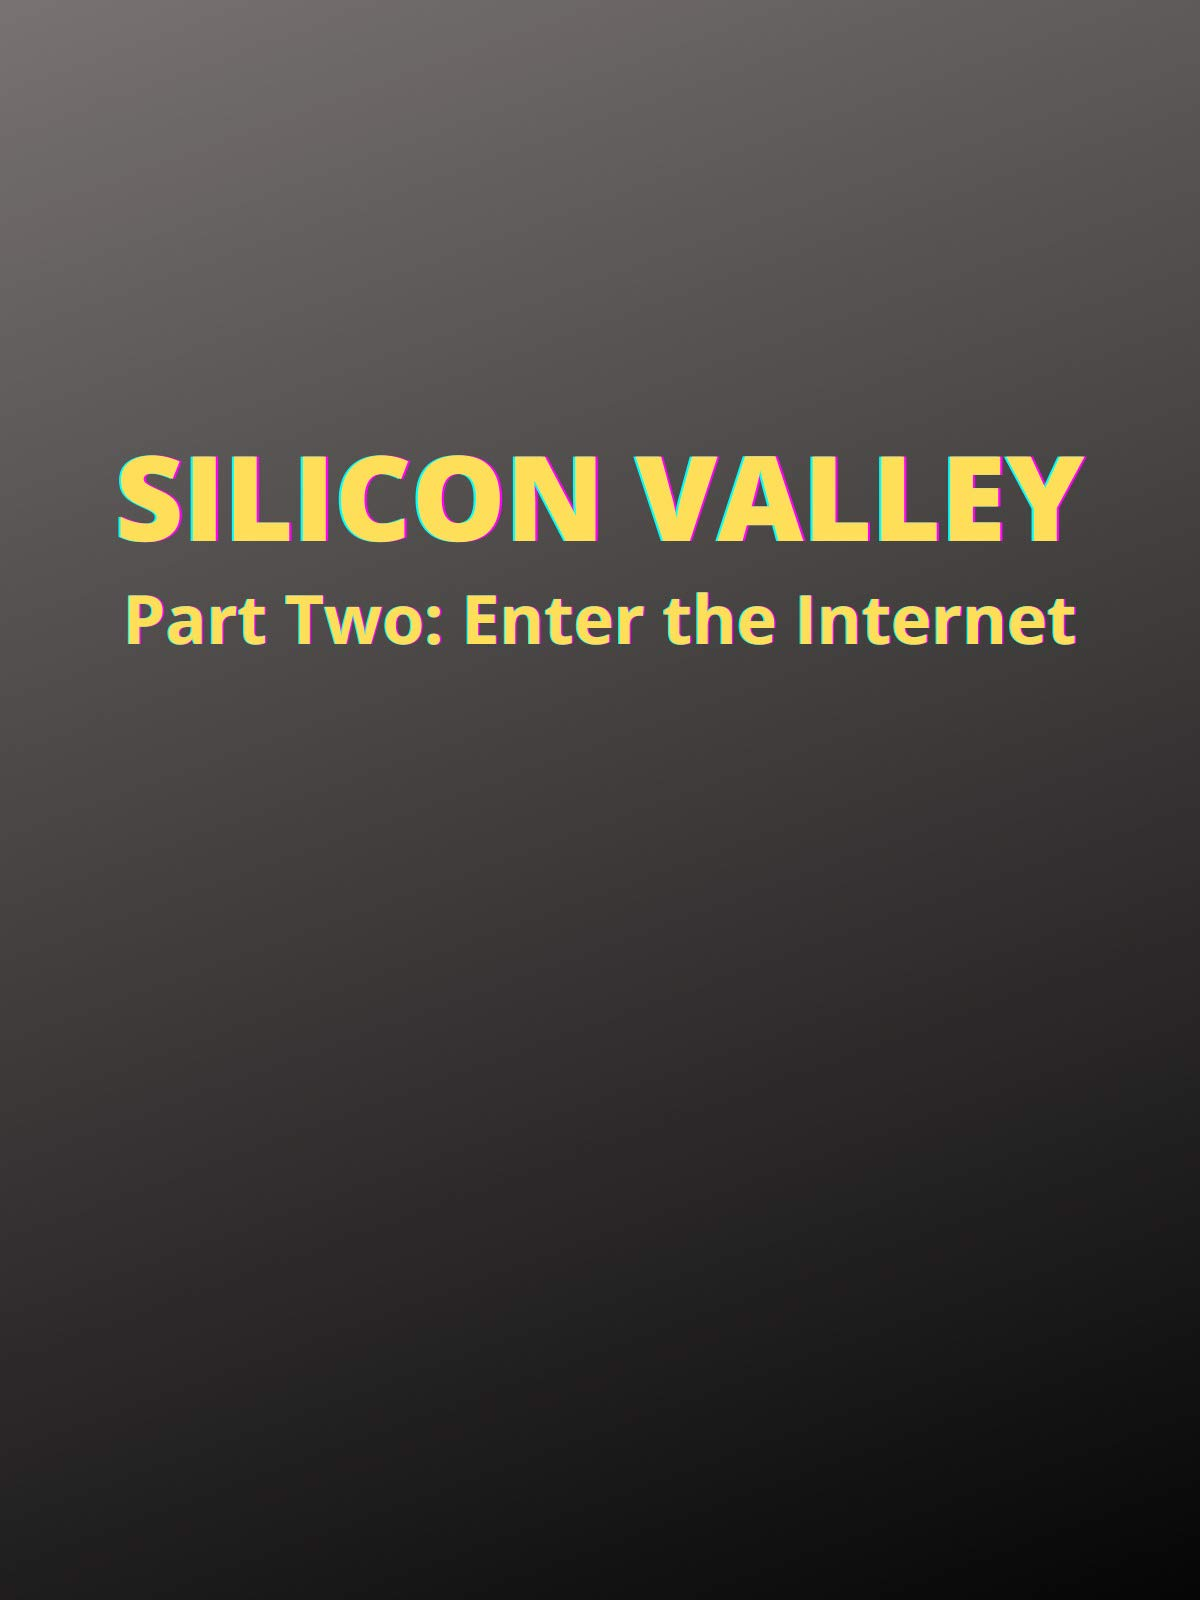 Silicon Valley: Part Two, Enter the Internet